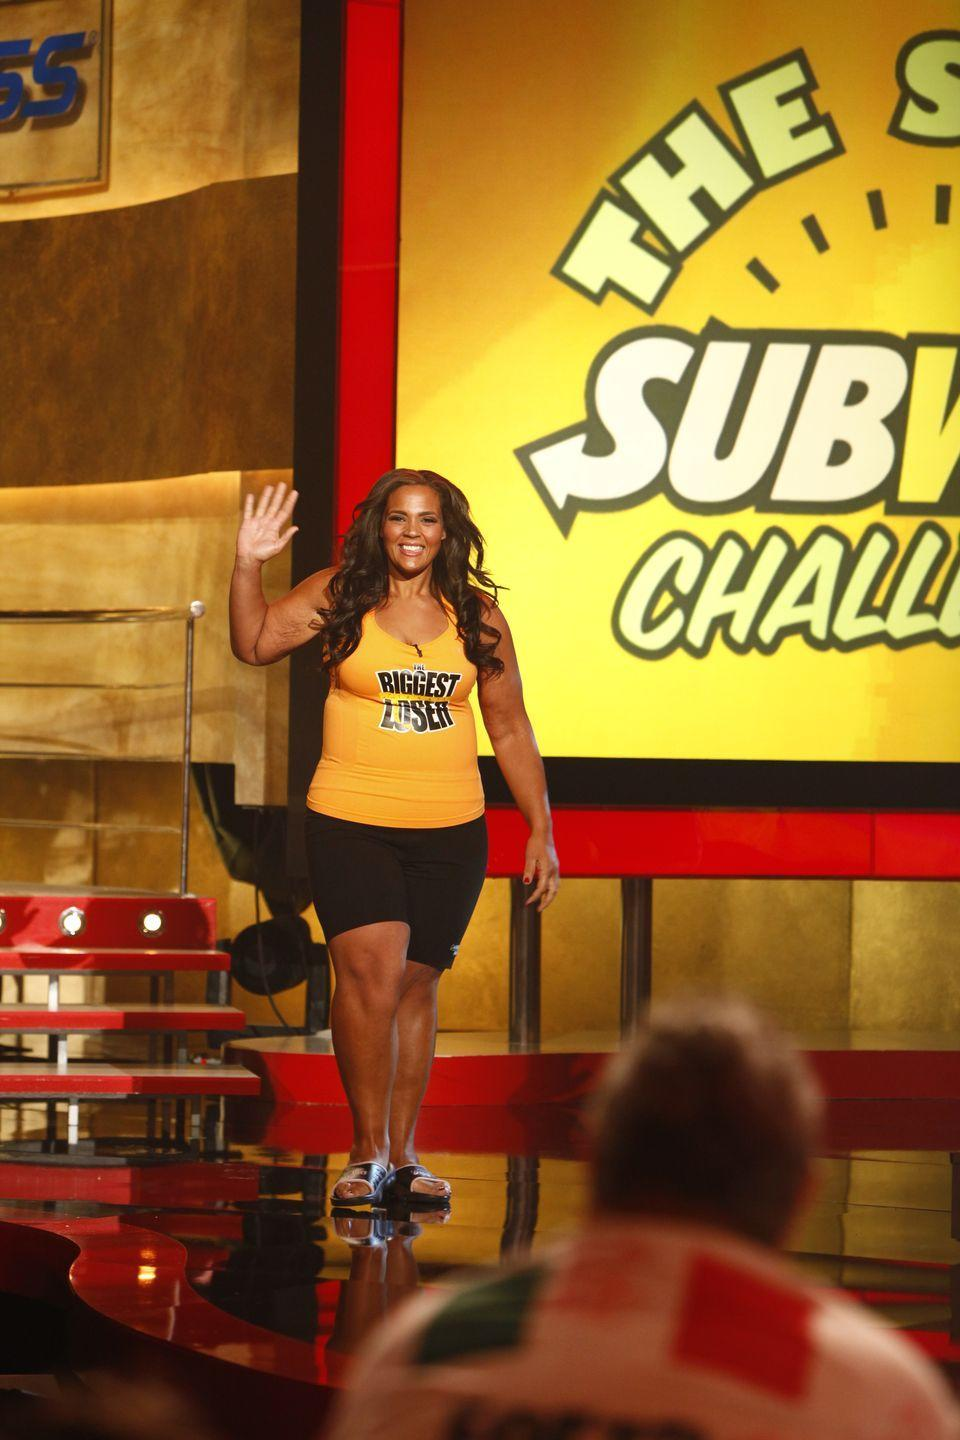 <p>Shay ended up losing 172 pounds by the show's finale, which was 36 percent of her body weight. She was later challenged to try to lose even more weight by the end of season 9—and she dropped an additional 52 pounds.</p>